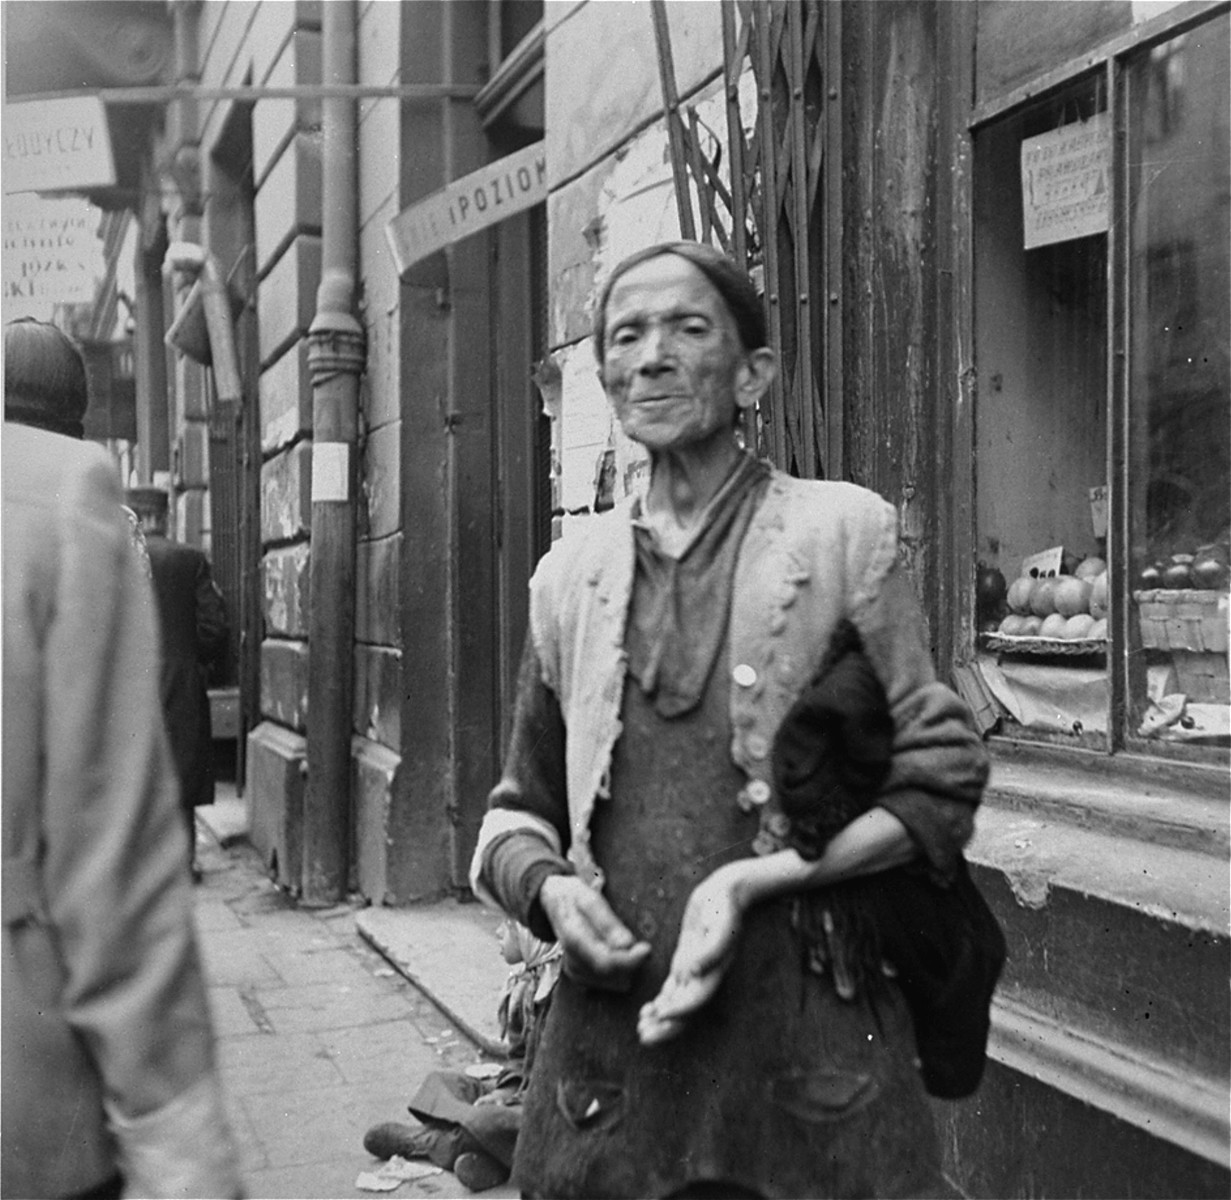 """A poor woman begs for coins or food on the street in the Warsaw ghetto.    Joest's original caption reads: """"Apples and pears in the display window behind her, this woman waited for a coin.  On the curb beside her sat her child."""""""